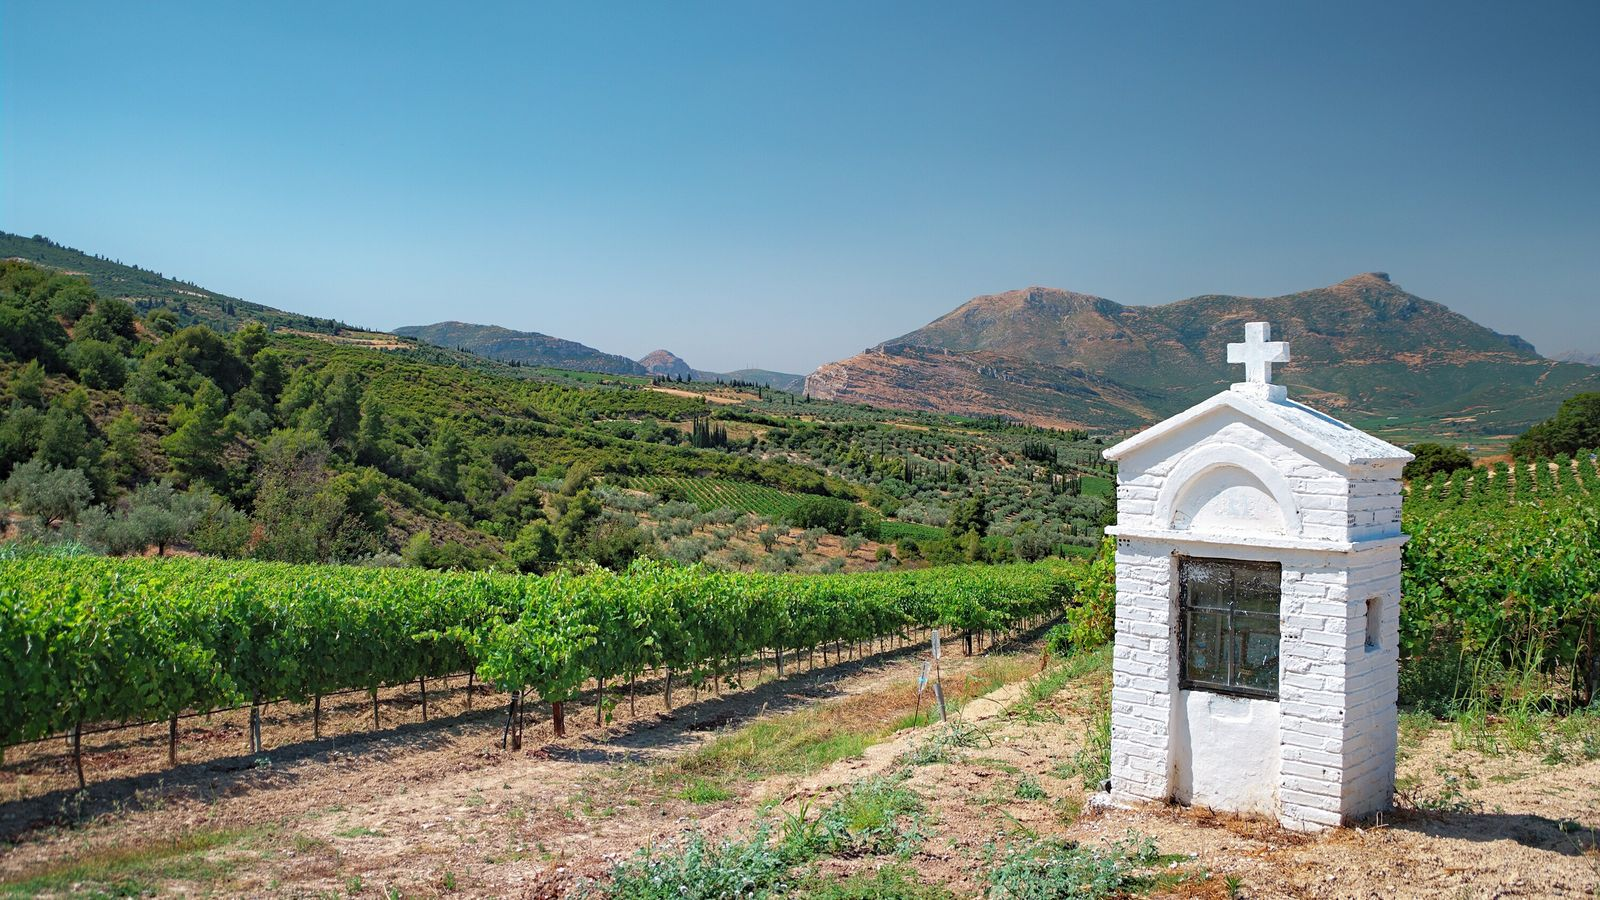 A vineyard located in the Nemea winelands, in the Peloponnese — Greece's largest wine region.